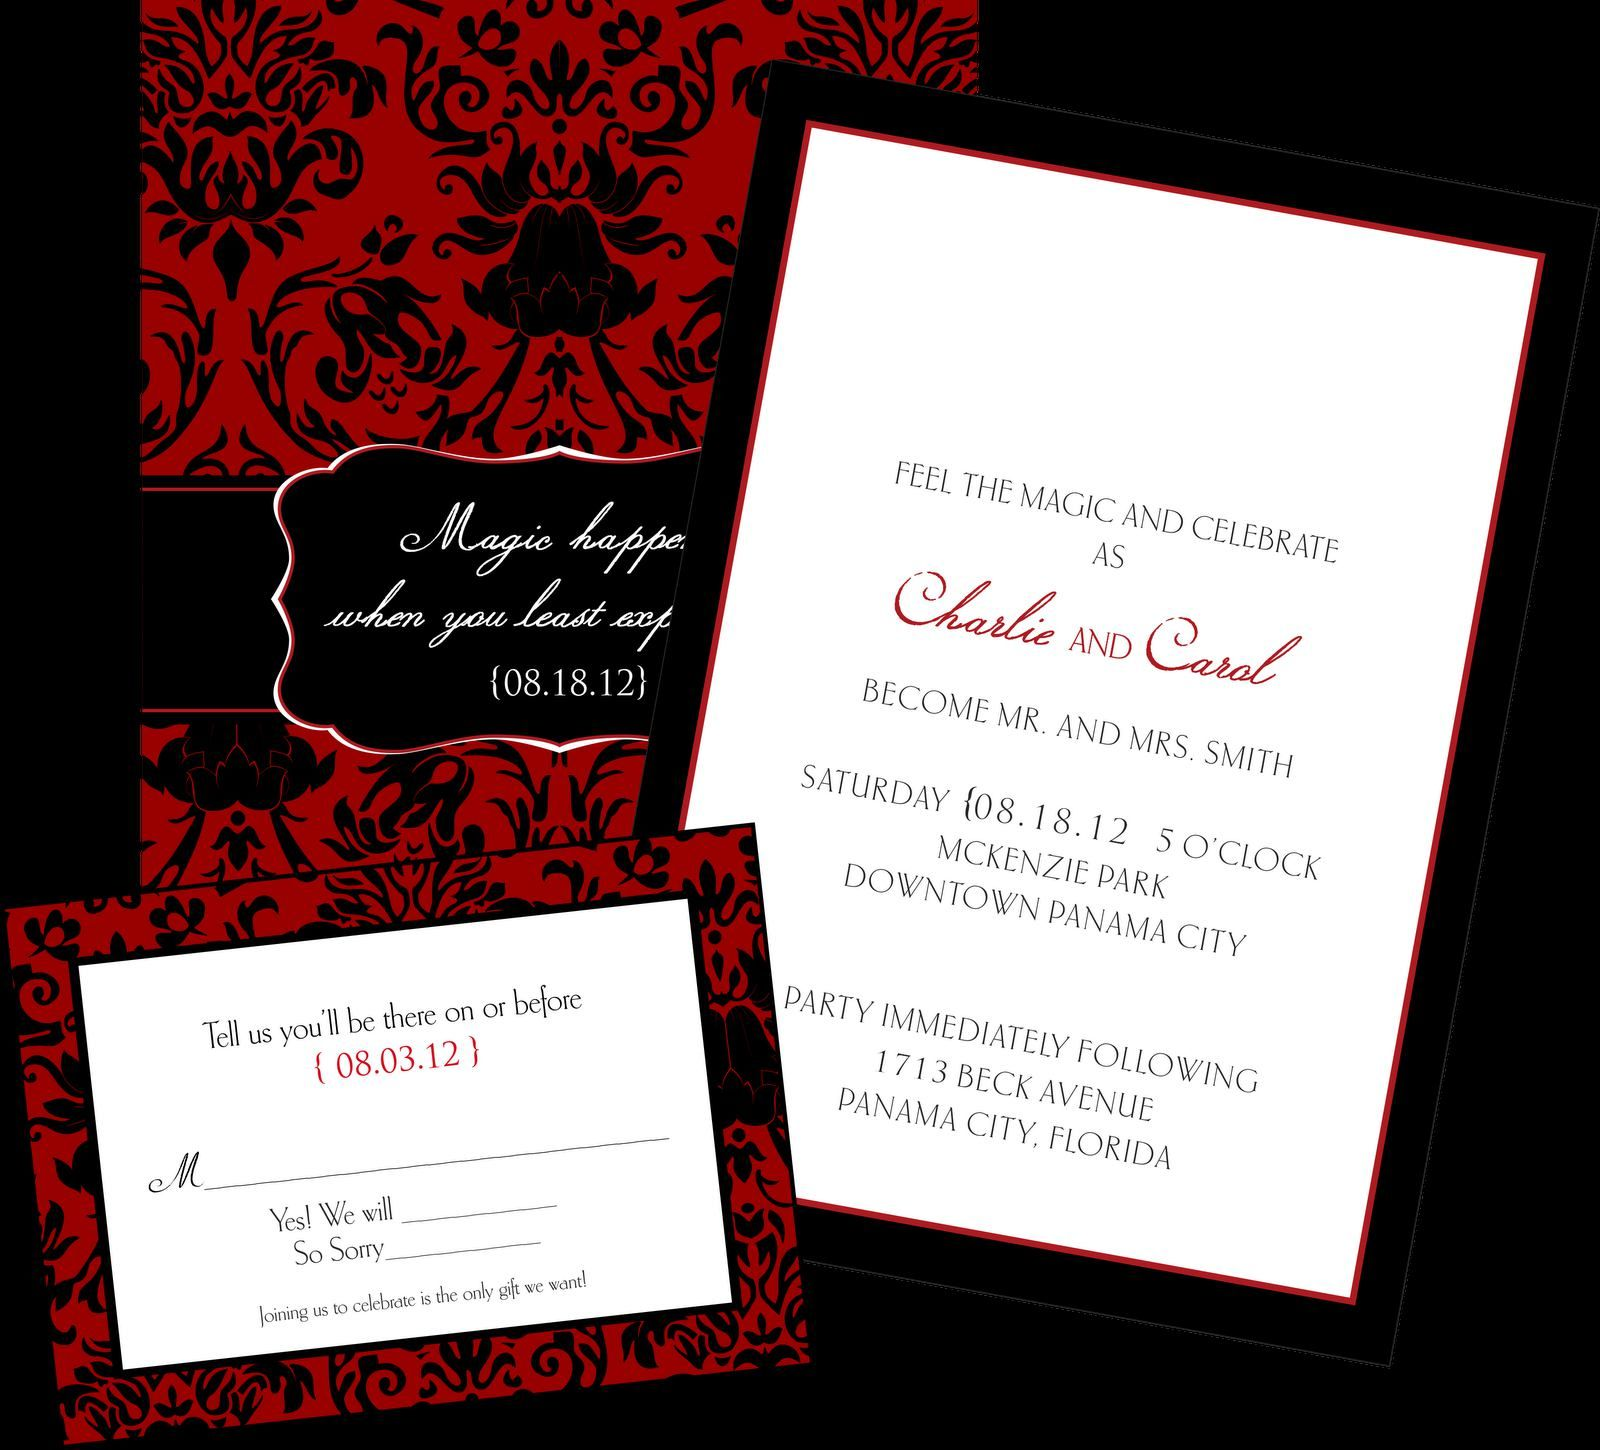 Wedding Invitation Blank Card Stock | Onvacationsite.co